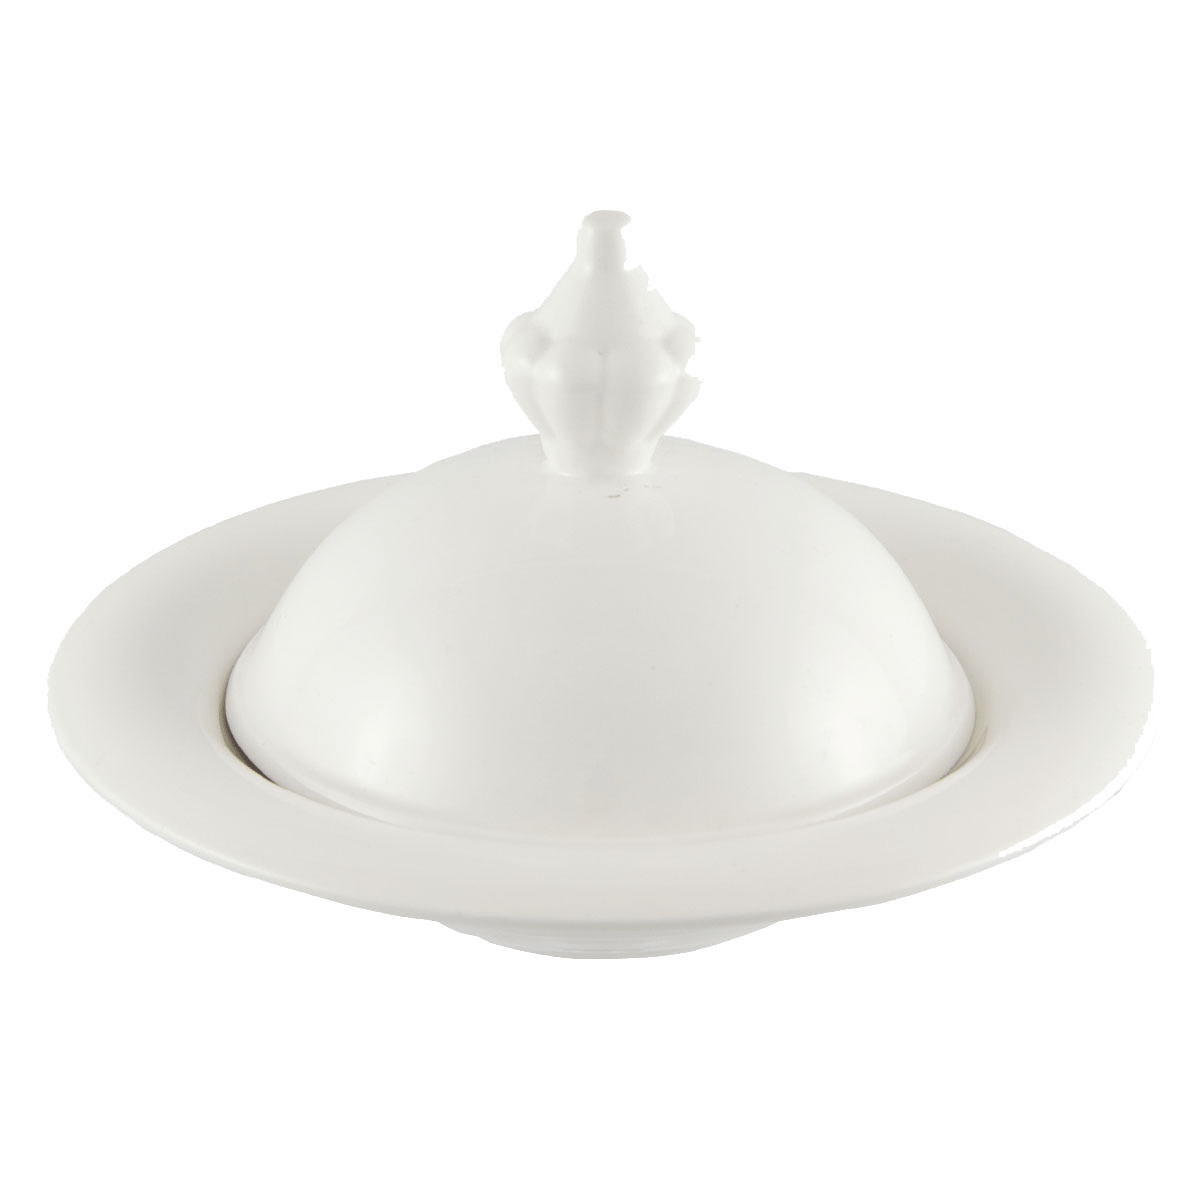 /uploads/UserFiles/Images/Products%2Fwhite-porcelain%2Fsoup-bowl%2Fsoup-bowl-0425-min.png